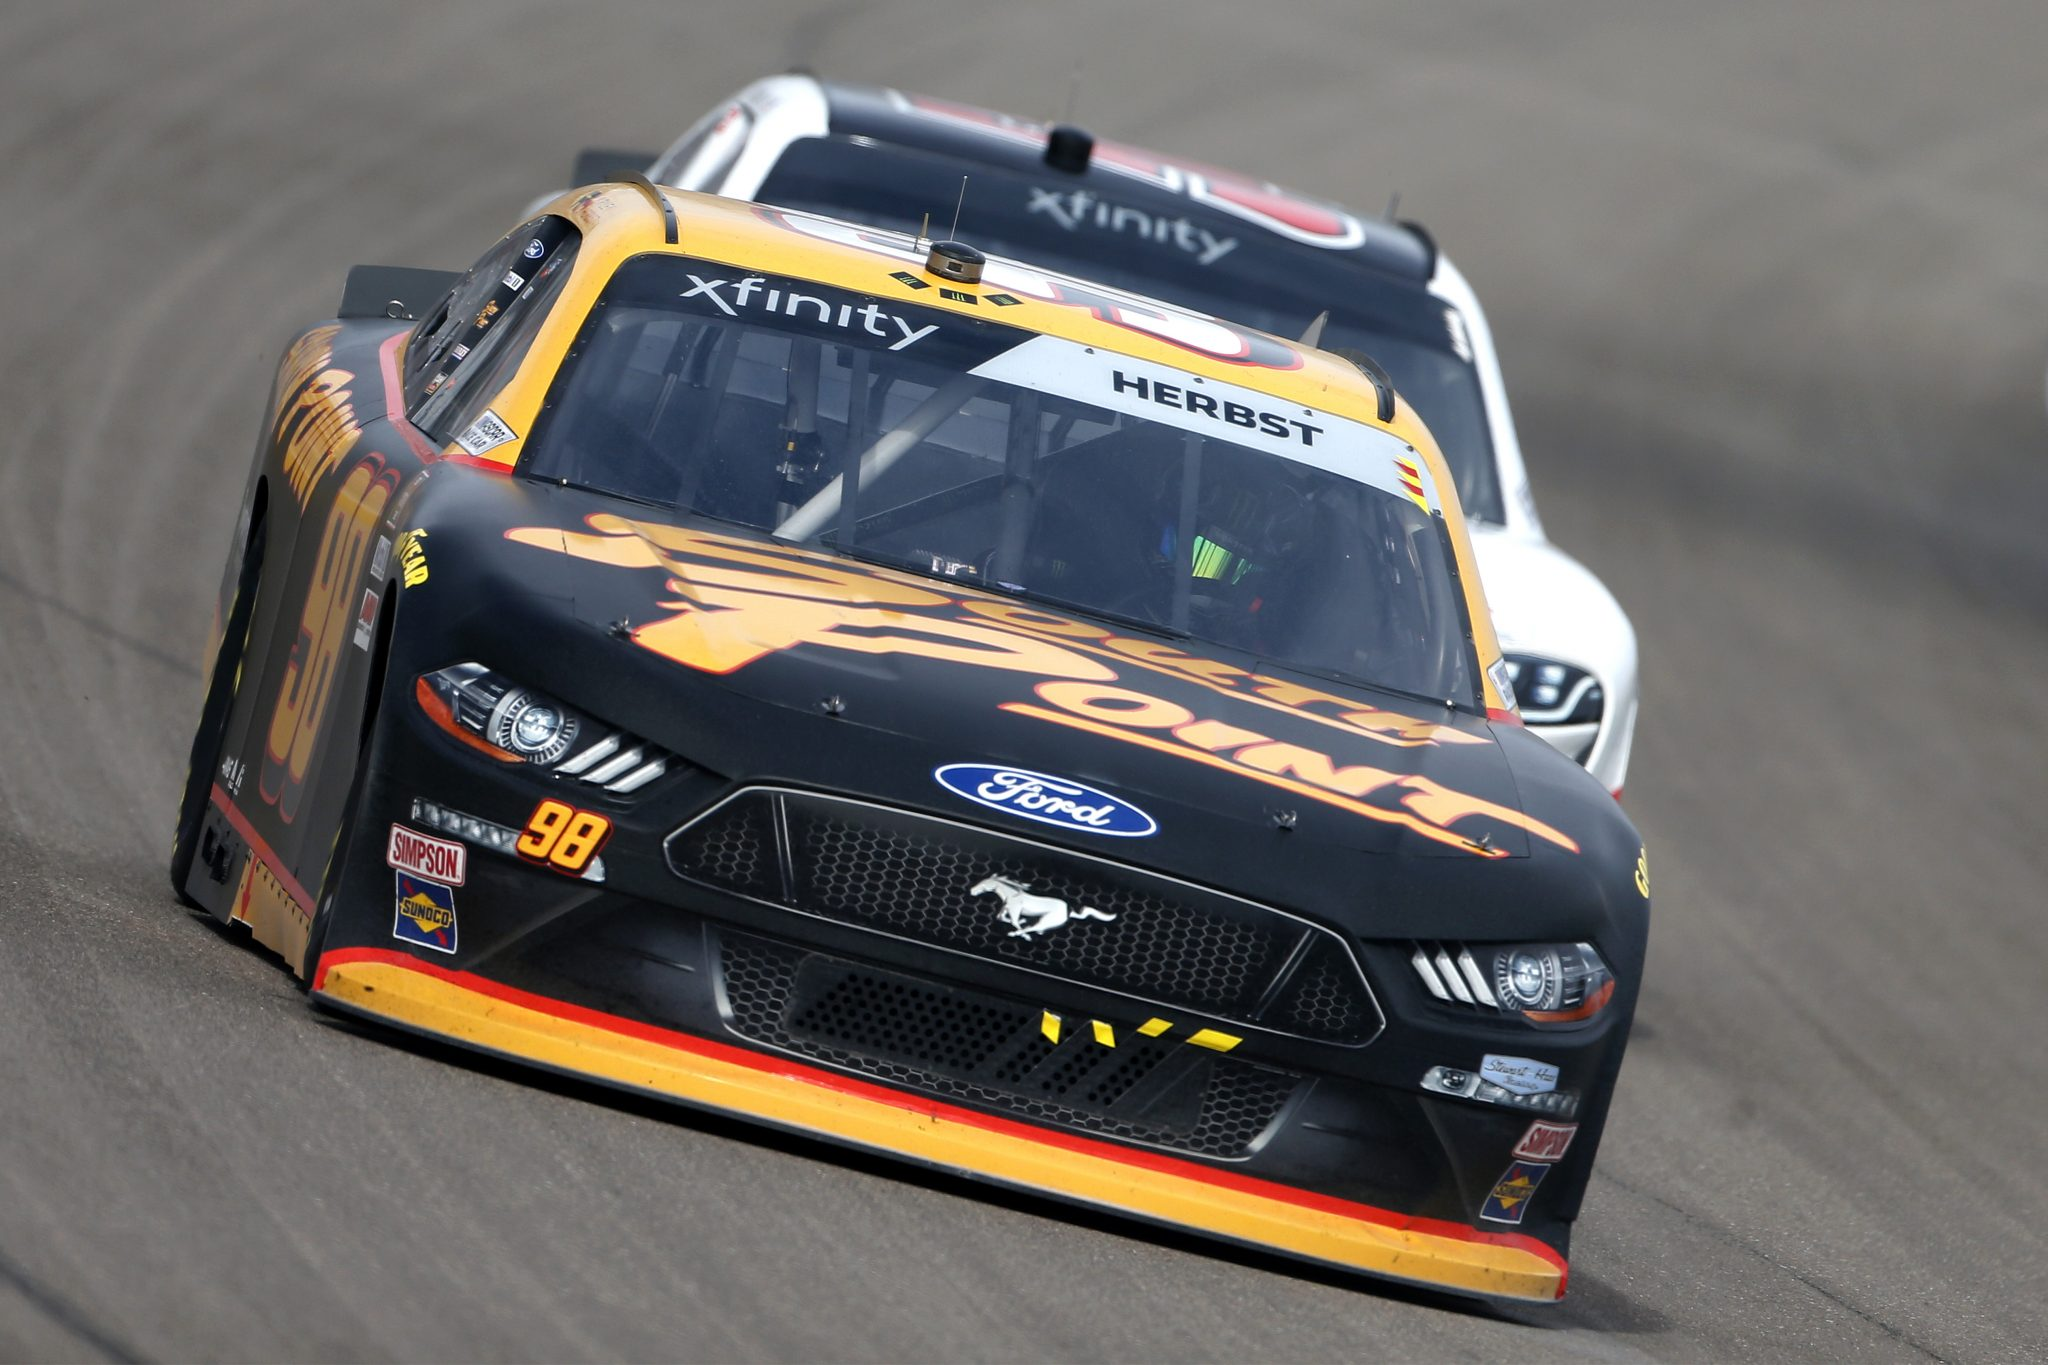 LAS VEGAS, NEVADA - MARCH 06: Riley Herbst, driver of the #98 South Point Ford, drives during the NASCAR Xfinity Series Alsco Uniforms 300 at The Bullring at Las Vegas Motor Speedway on March 06, 2021 in Las Vegas, Nevada. (Photo by Brian Lawdermilk/Getty Images) | Getty Images